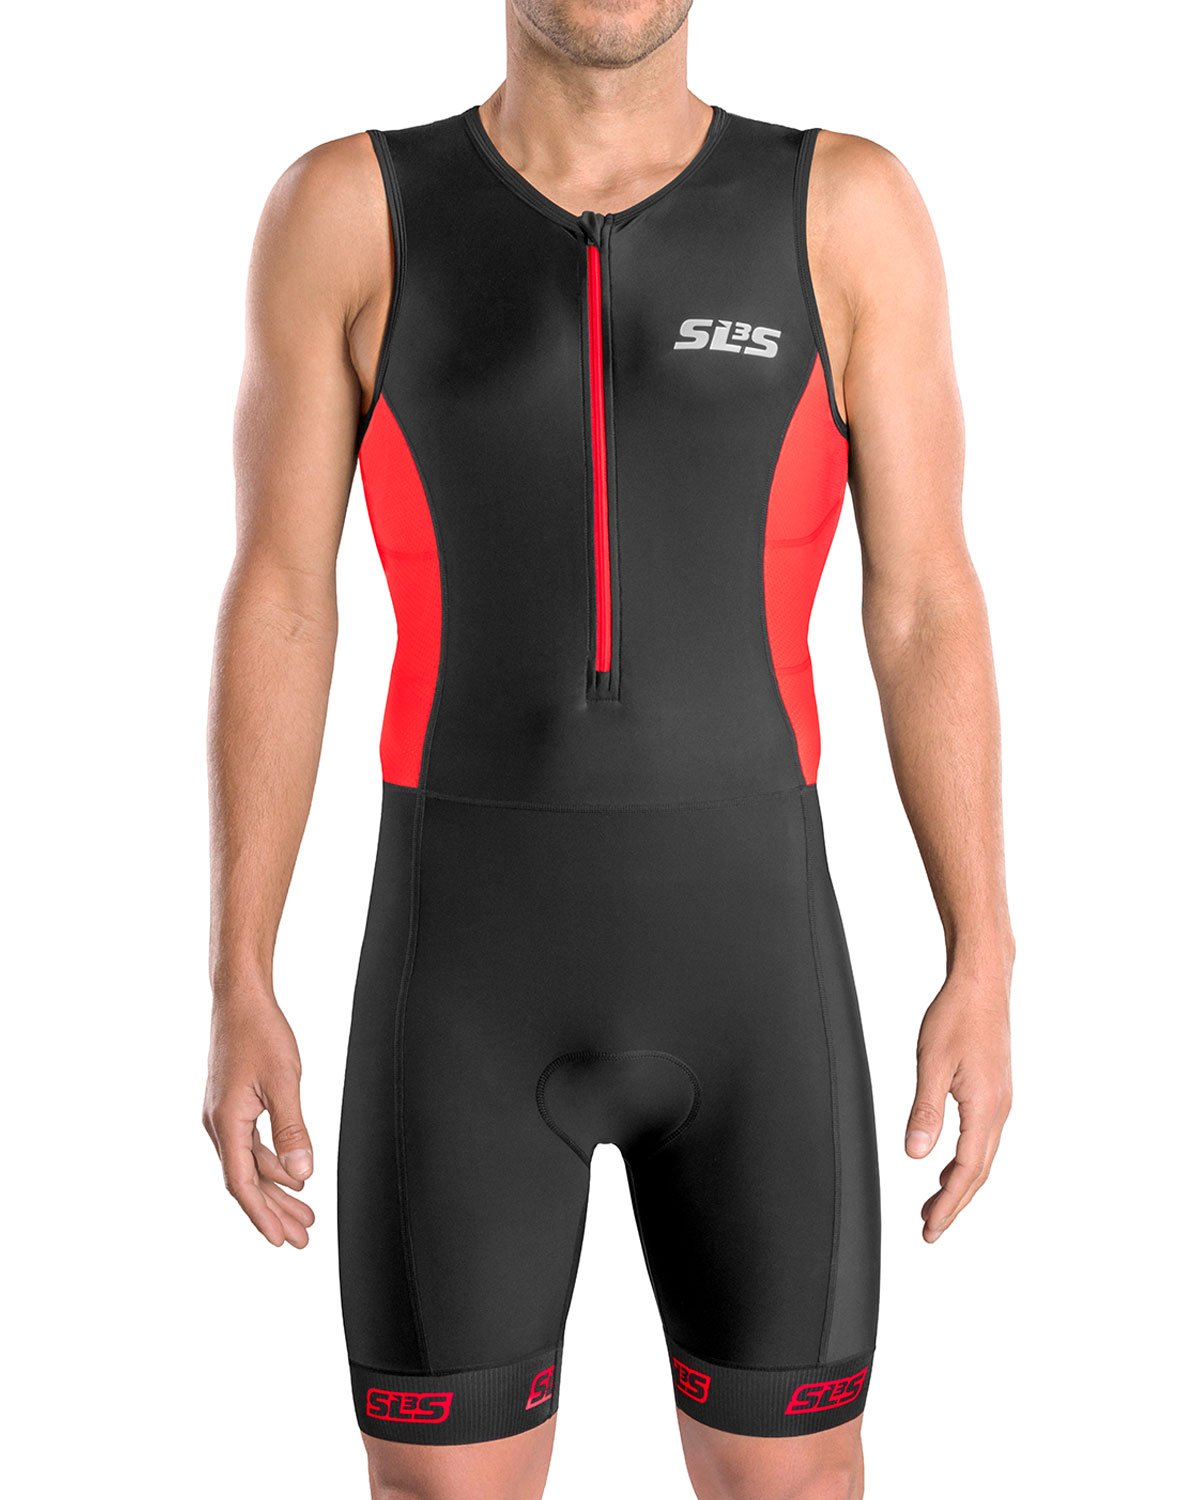 SLS3 Trisuit Triathlon Men | Mens Tri Suits FRT | Men Triathlon Suit | Relaxed Fit | Designed by Athletes for Athletes